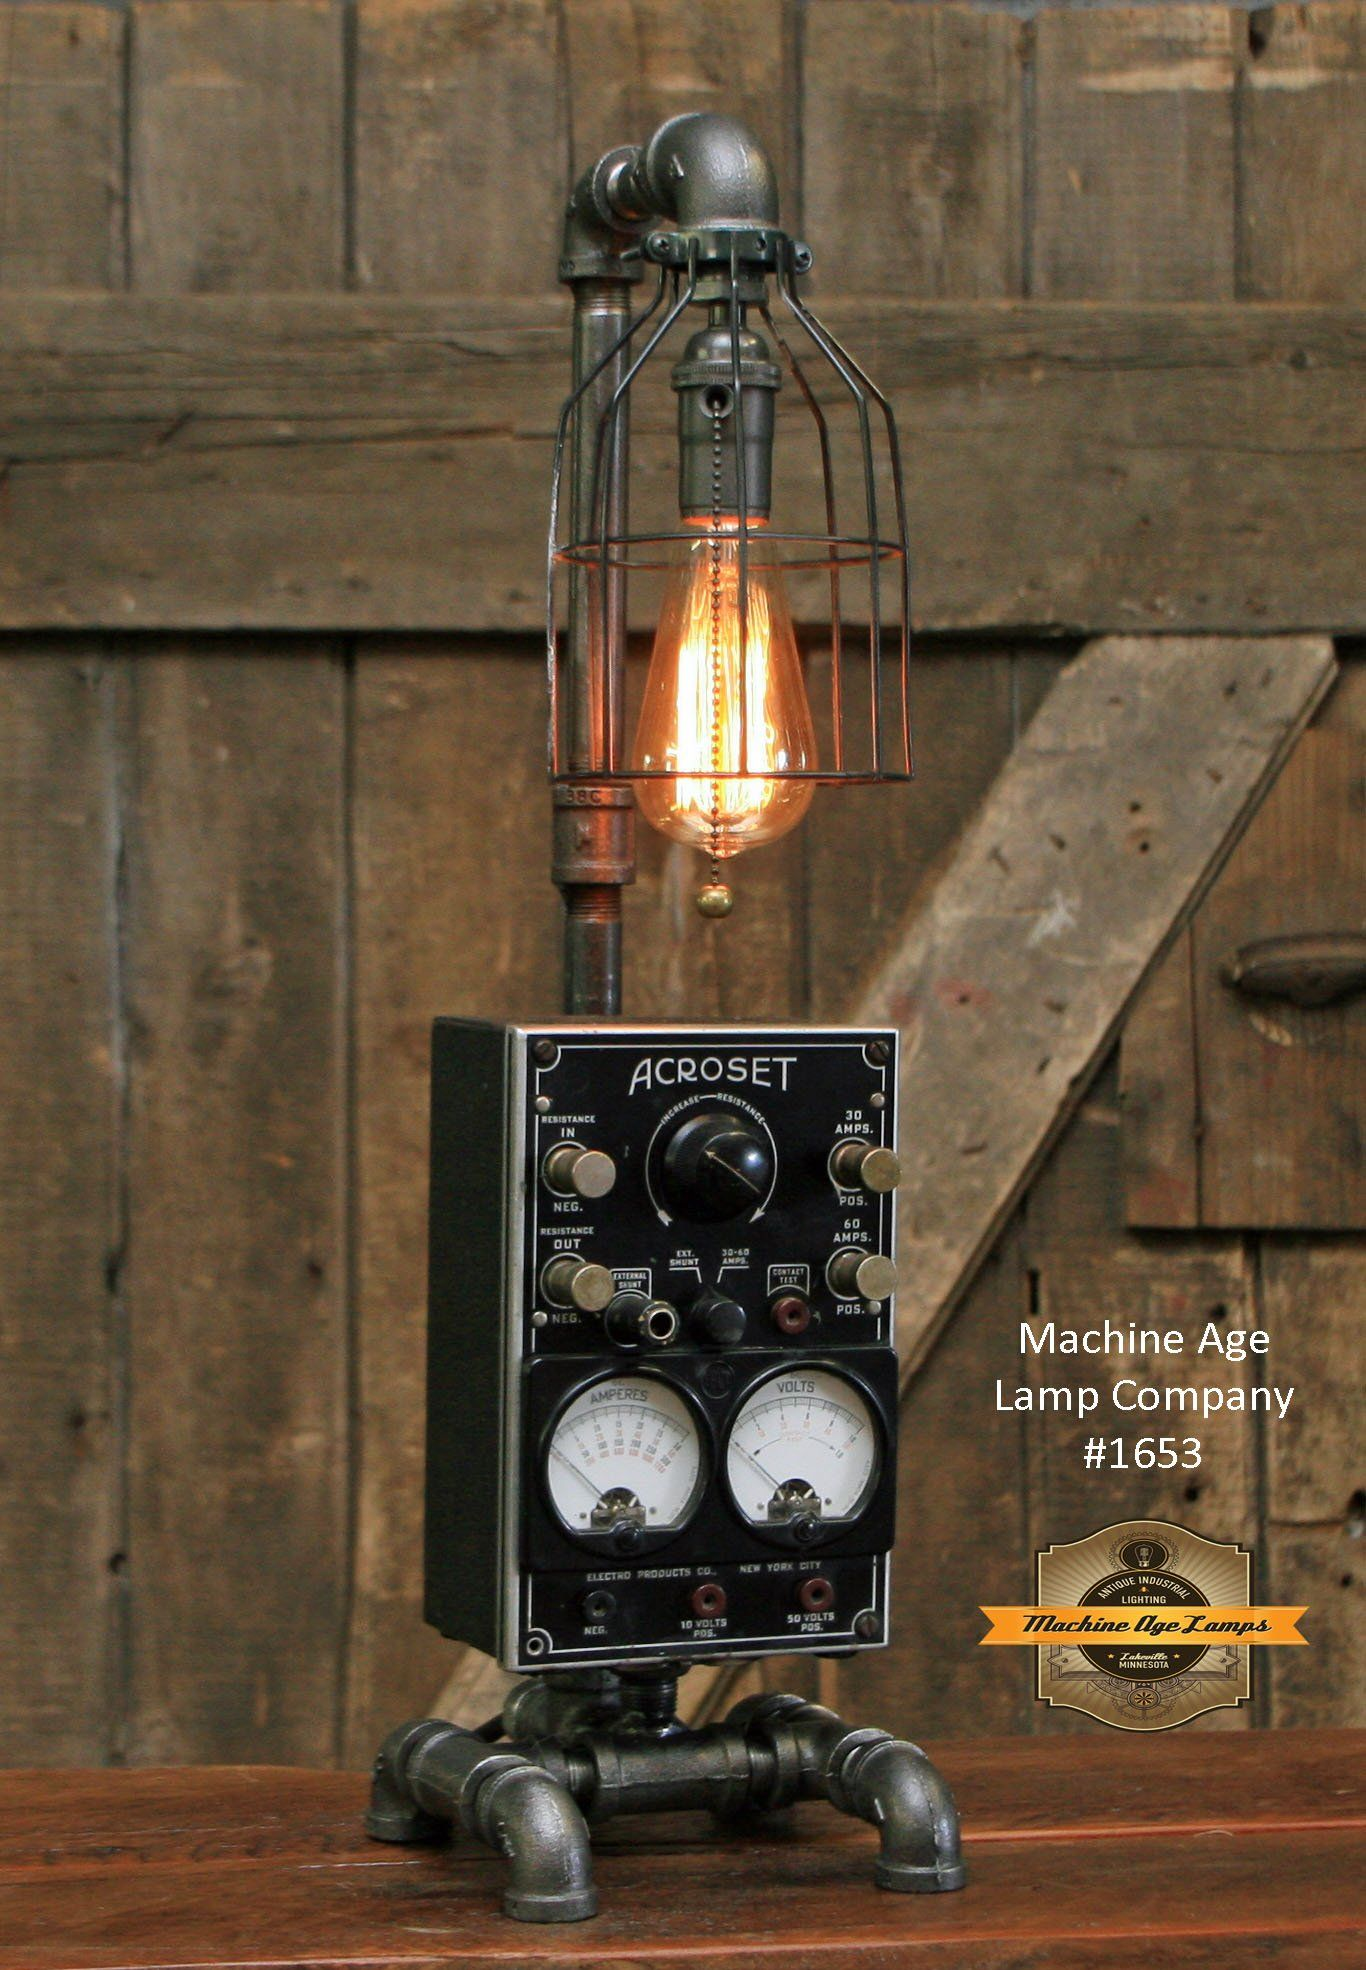 Pin On Shawn Carling And Machine Age Lamps